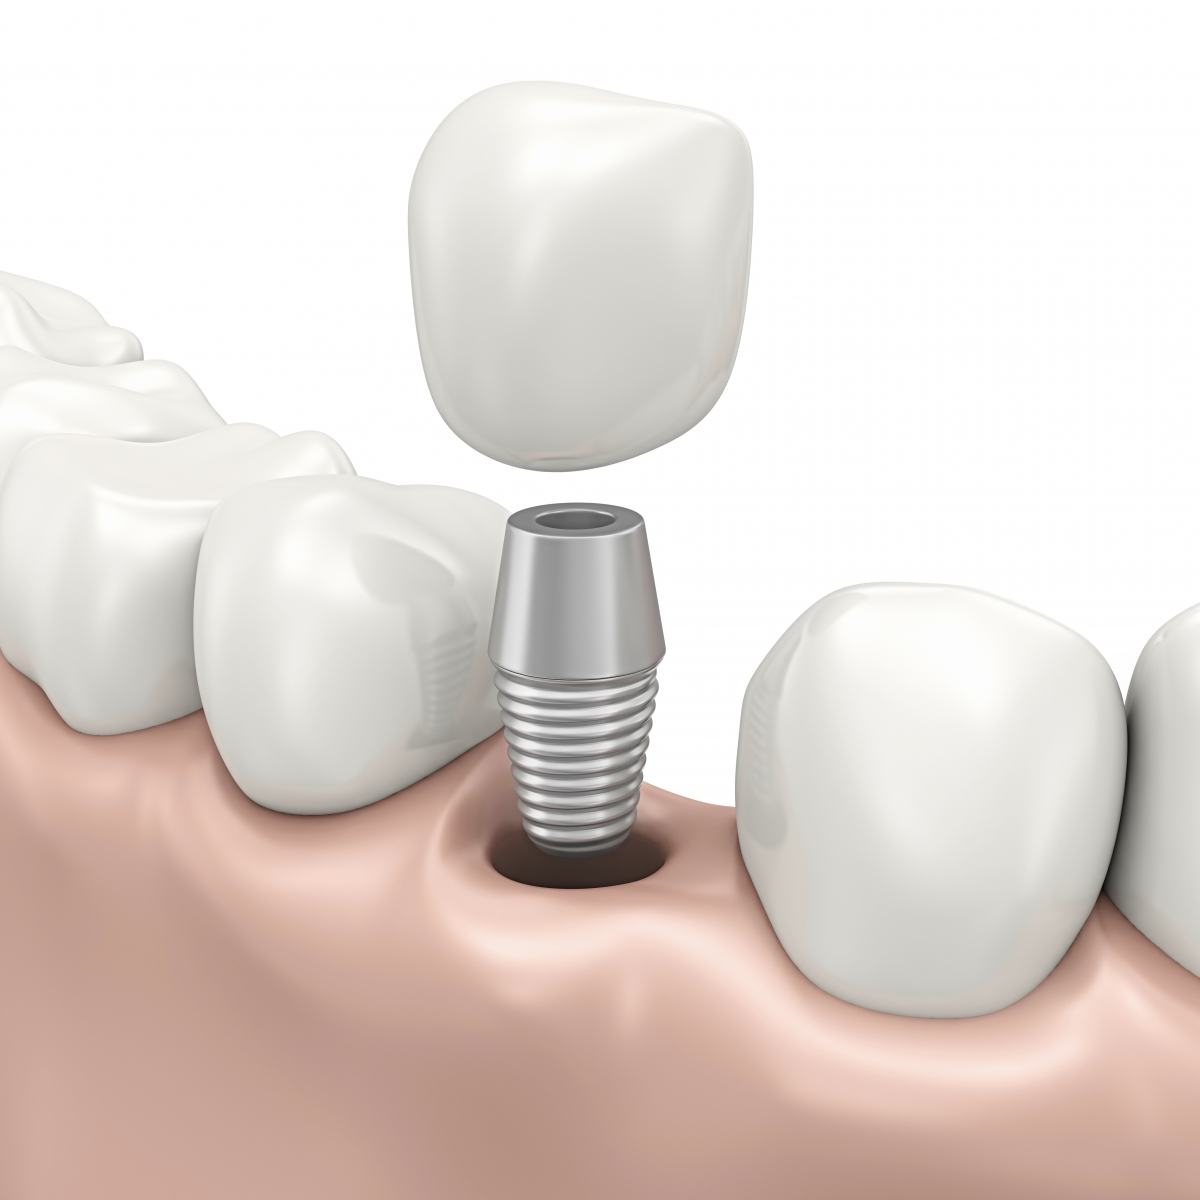 Dentists use T-Scan to ensure proper implant loading